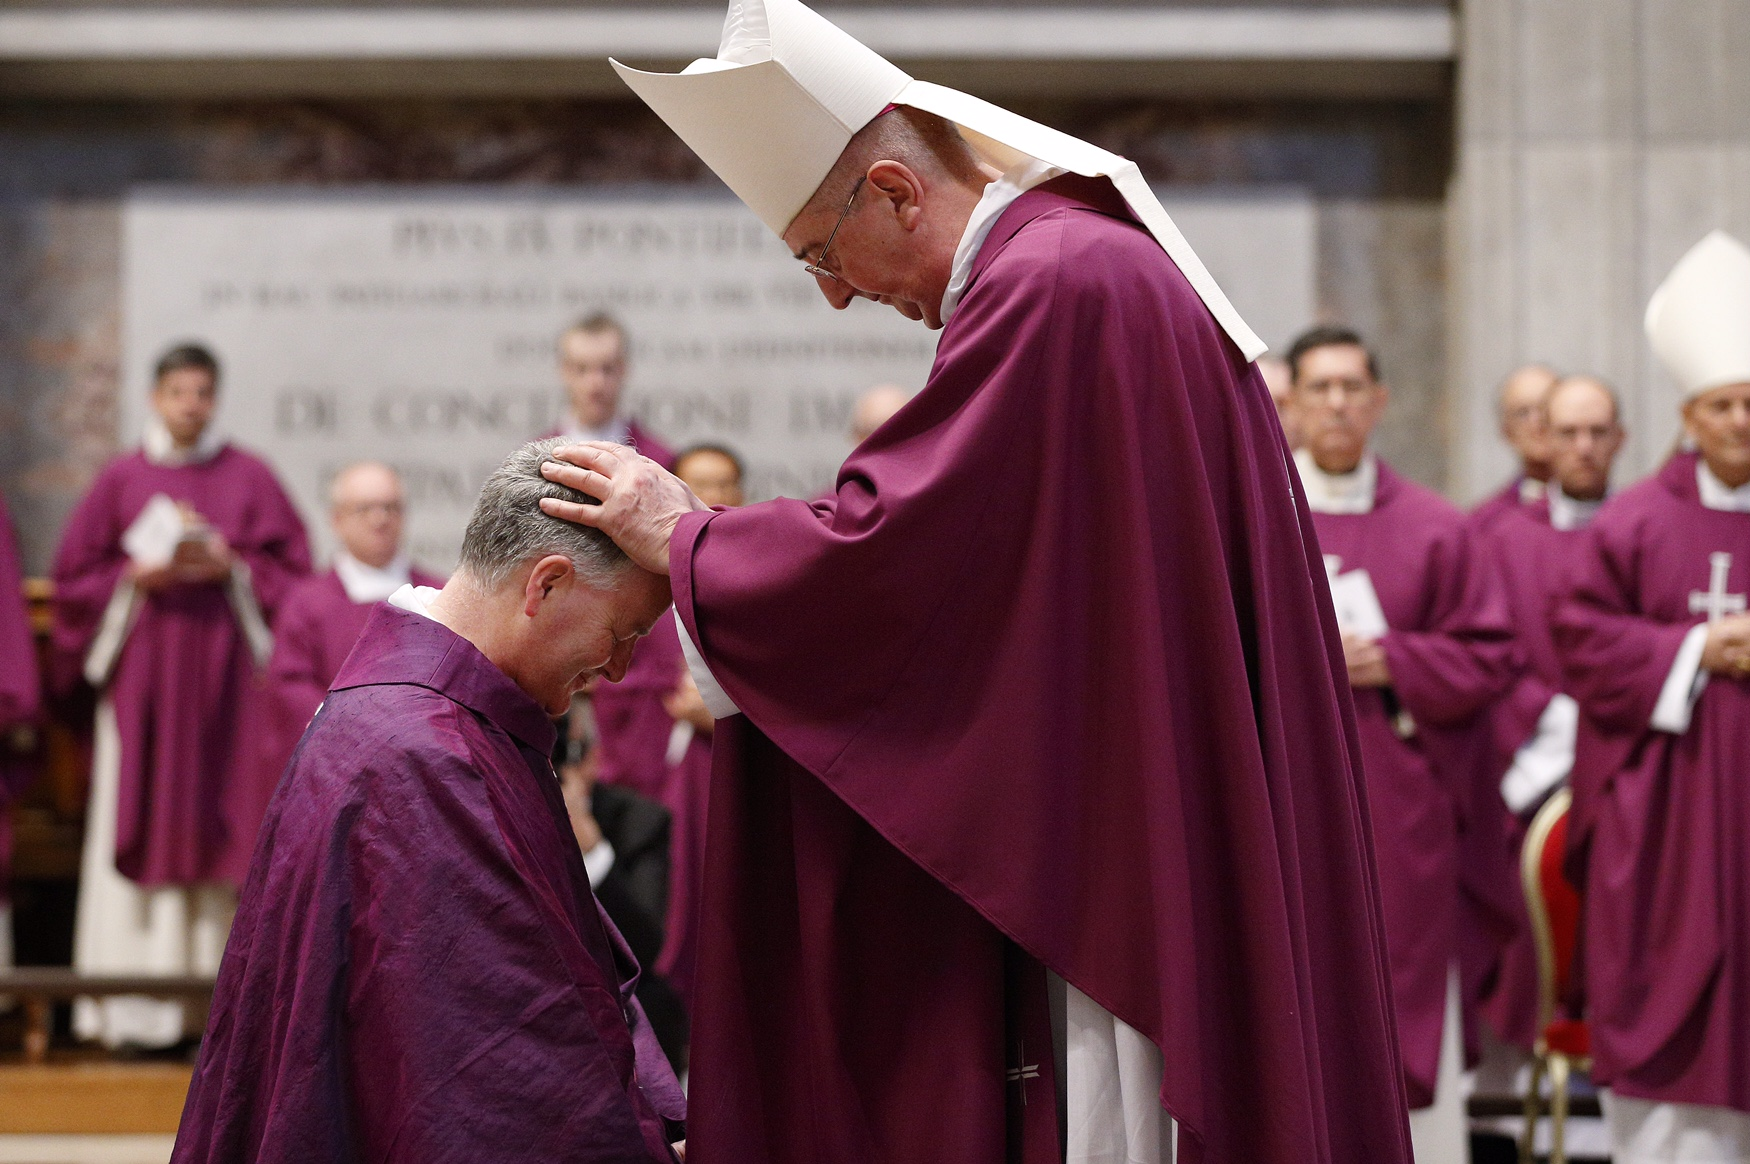 Dublin Priest Monsignor Paul Tighe ordained Bishop in ...